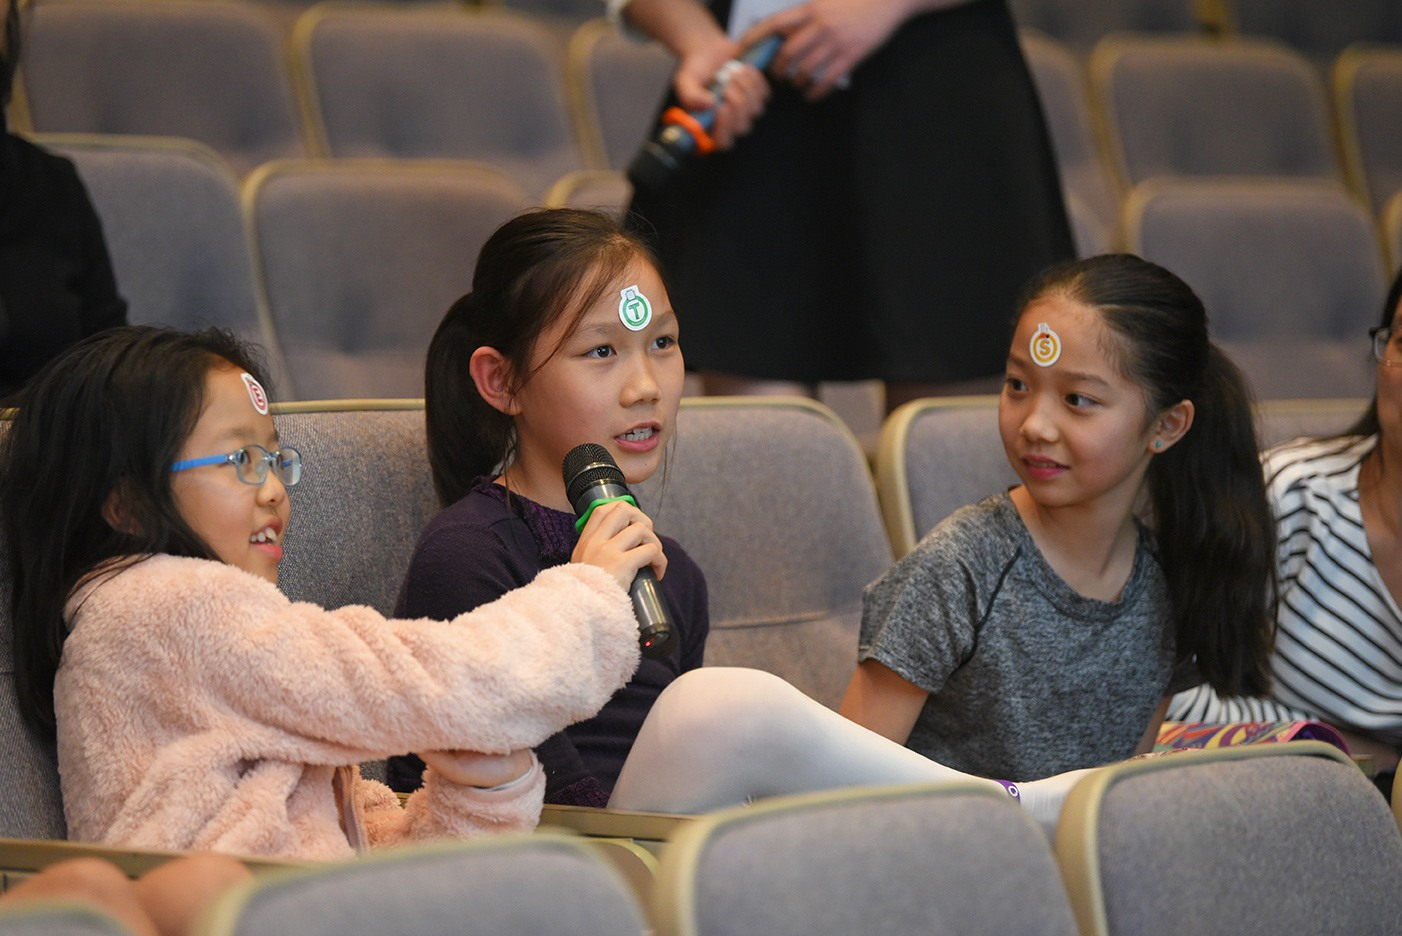 A child audience expressing her views.